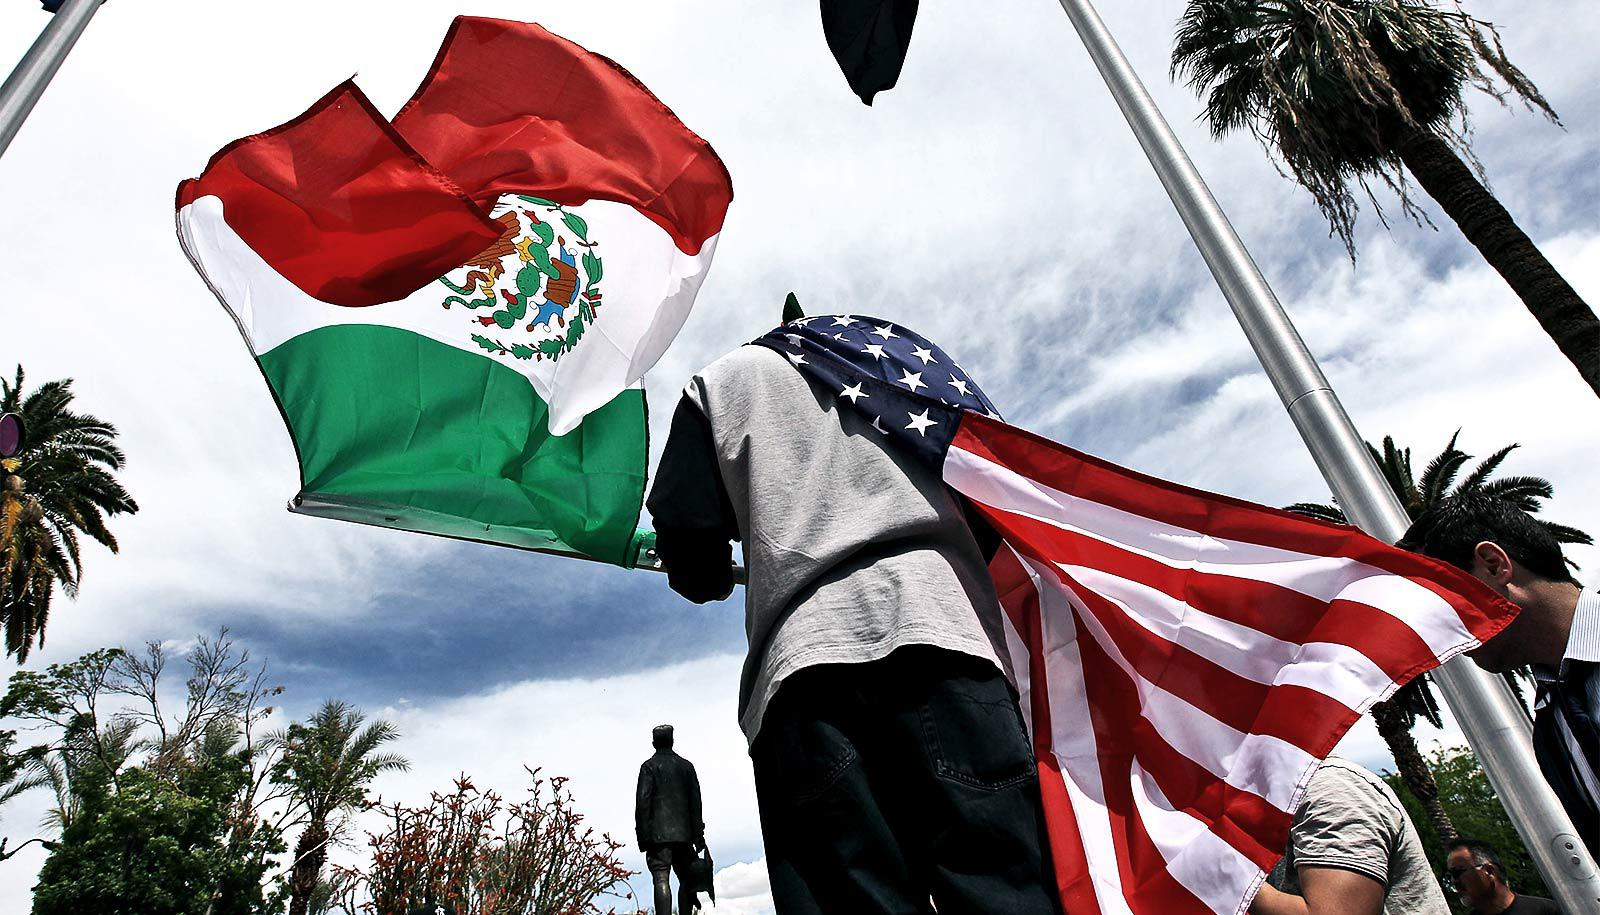 mexican and american flags (immigrants concept)